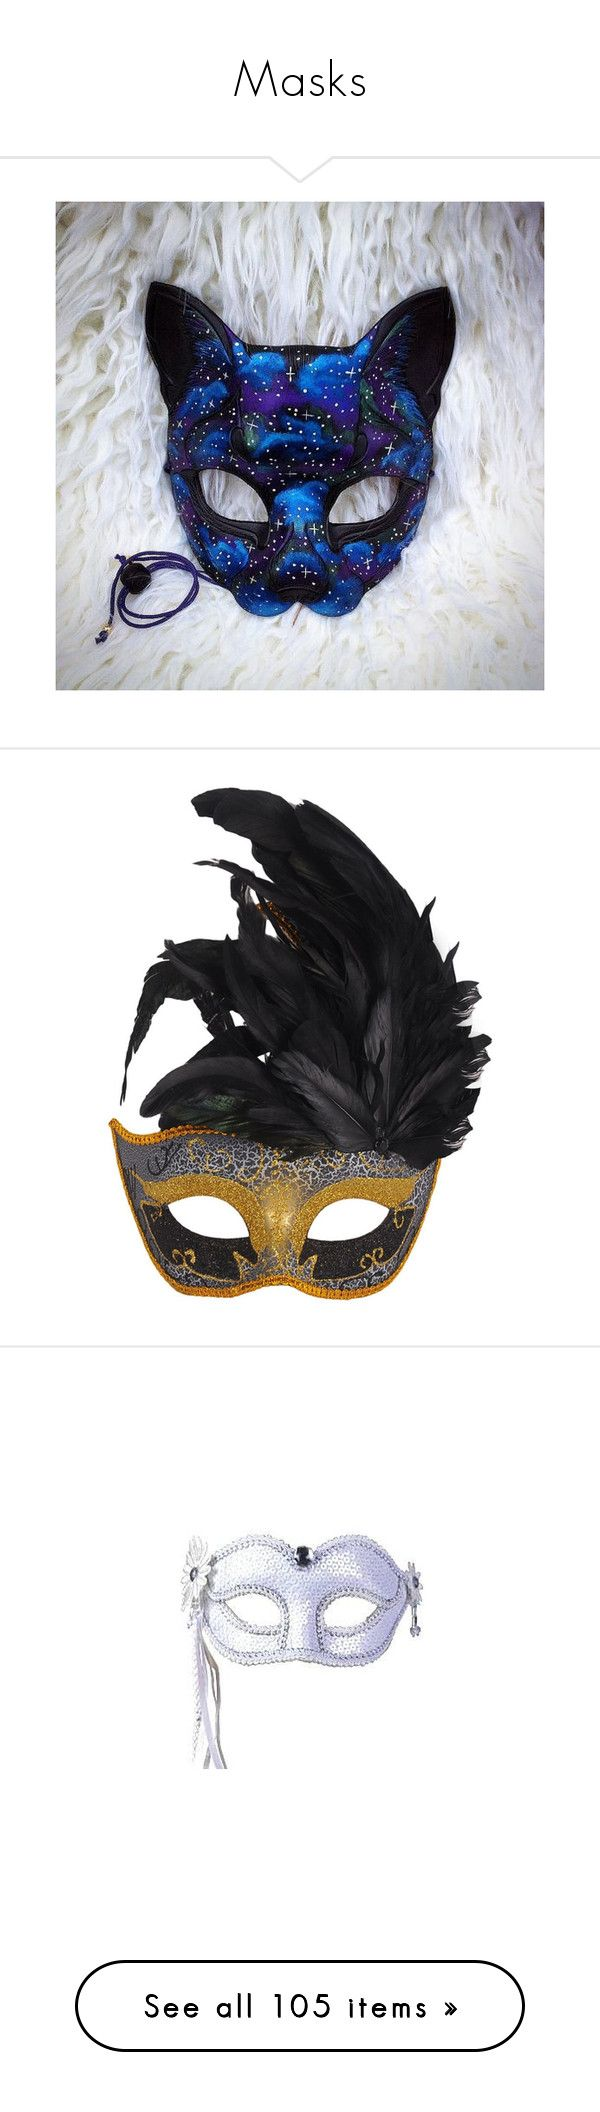 """""""Masks"""" by theclocker ❤ liked on Polyvore featuring costumes, blue costume, black cat halloween costumes, fancy costumes, blue halloween costume, galaxy halloween costume, masks, masquerade costume, feather costume and masquerade halloween costume"""